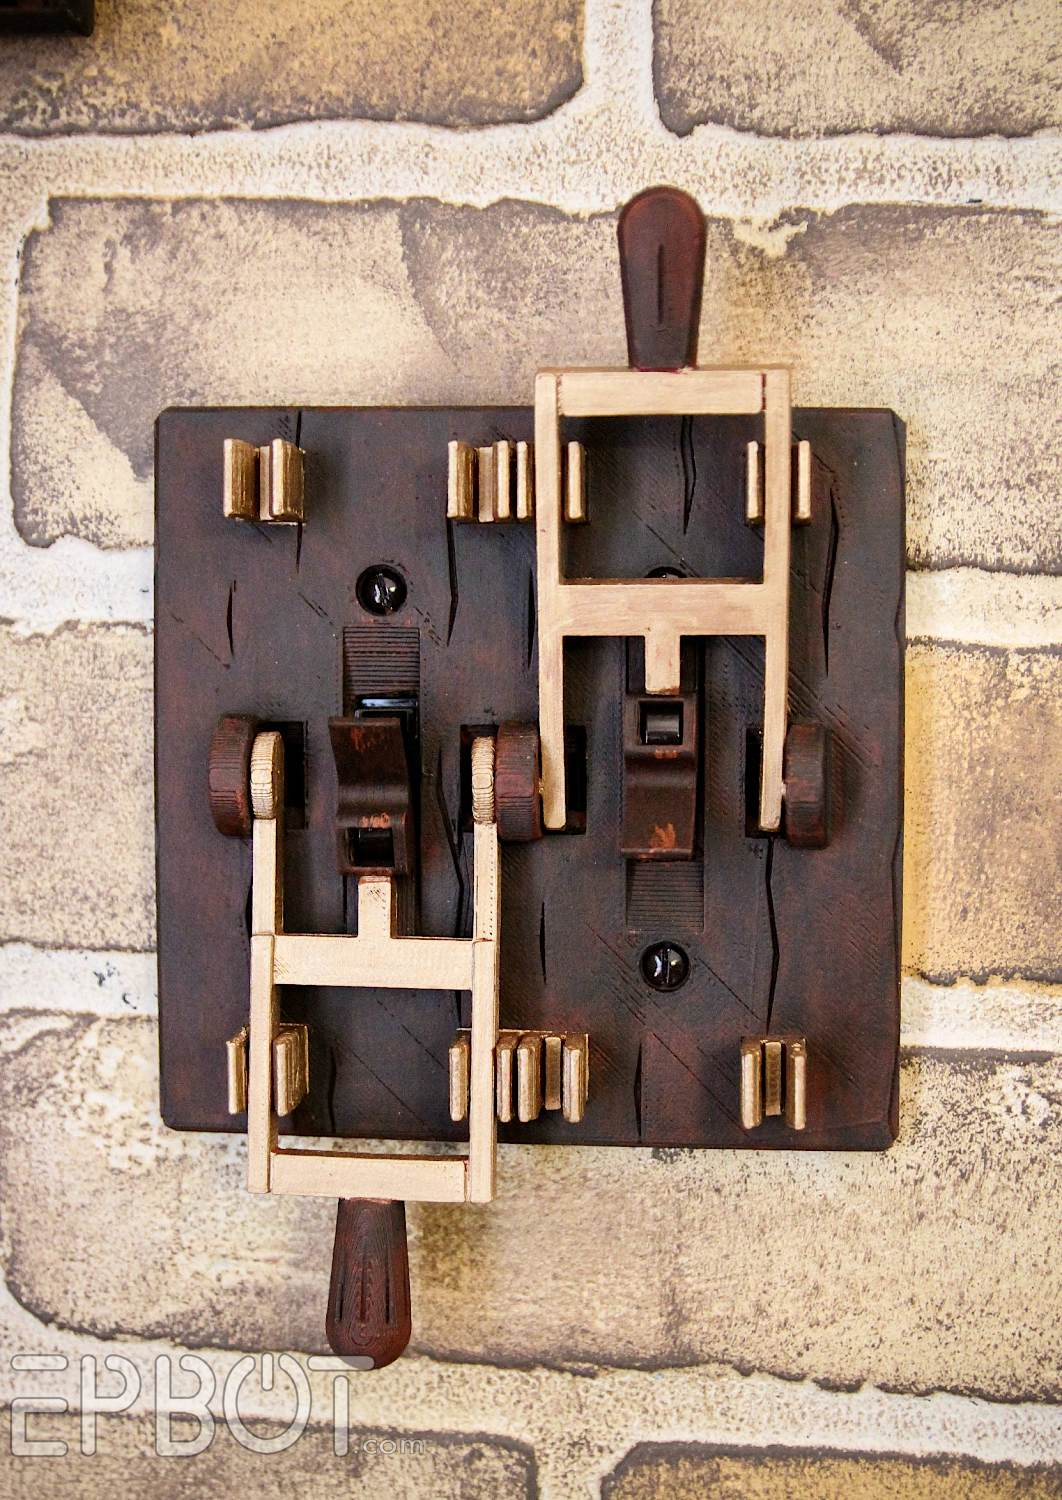 Cool Electrical Outlets Epbot The Top 3 Steampunk Switches For Your Inner Mad